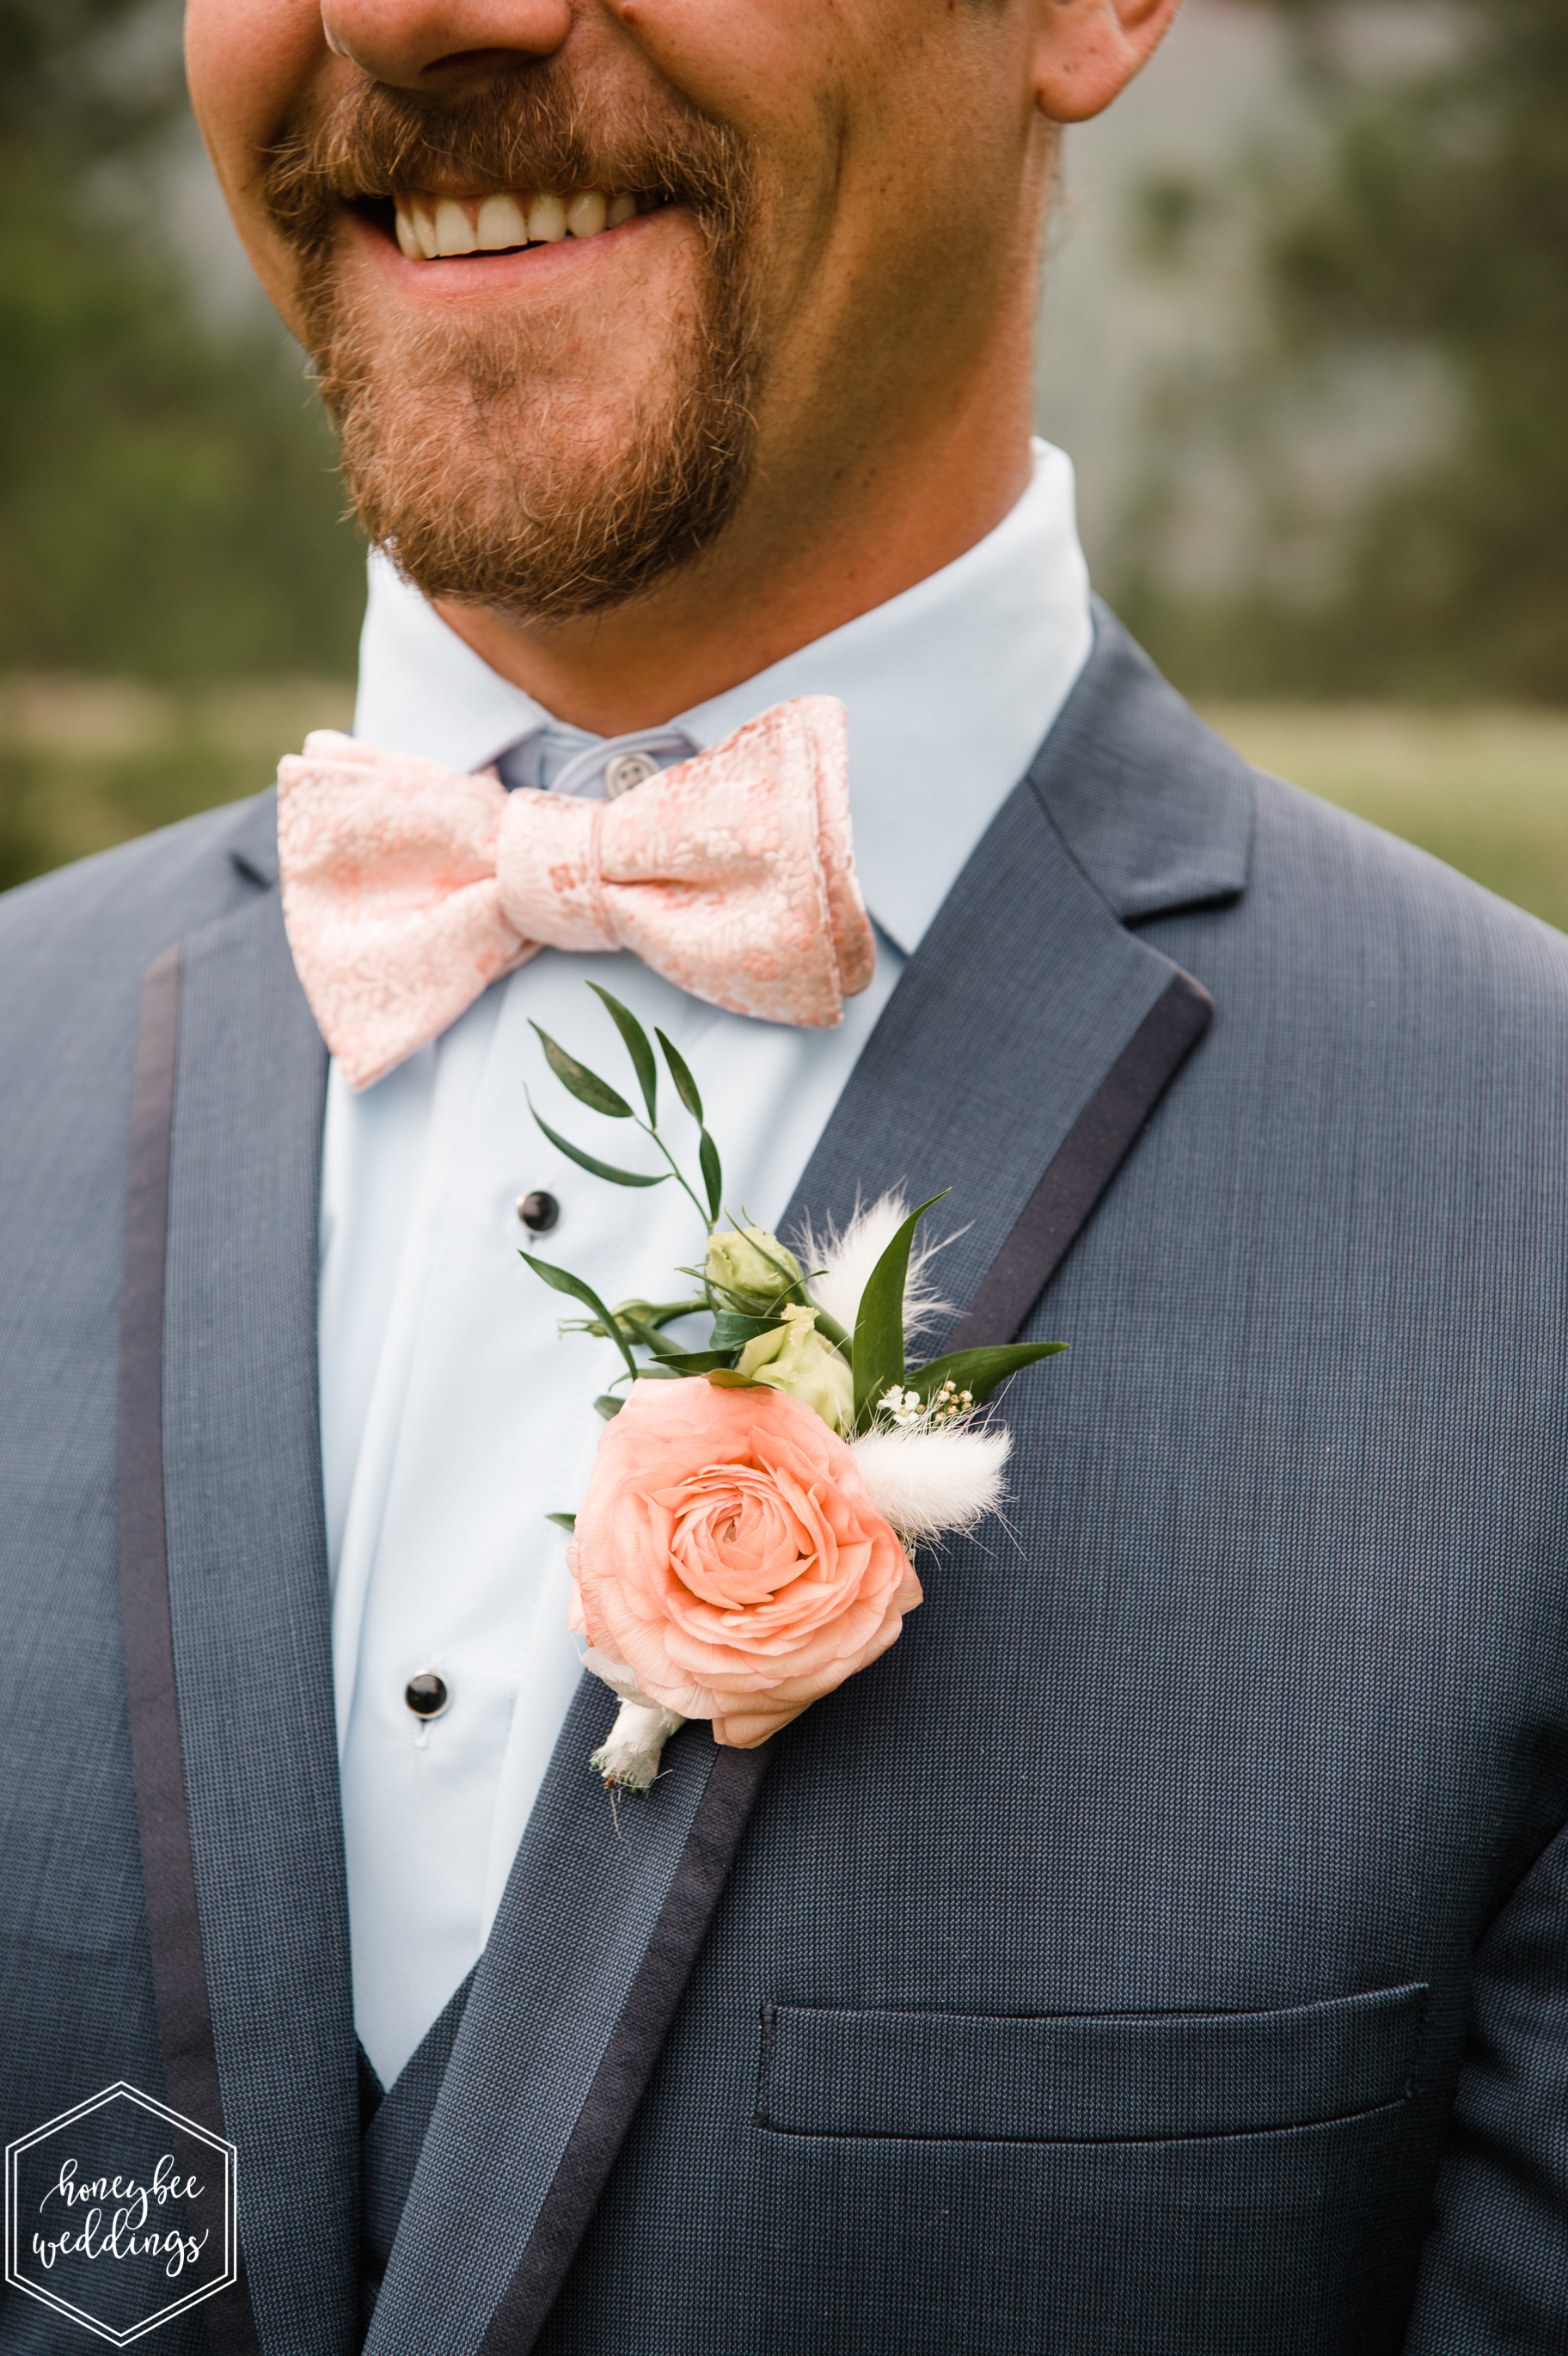 203Coral Mountain Wedding at White Raven_Honeybee Weddings_May 23, 2019-627.jpg